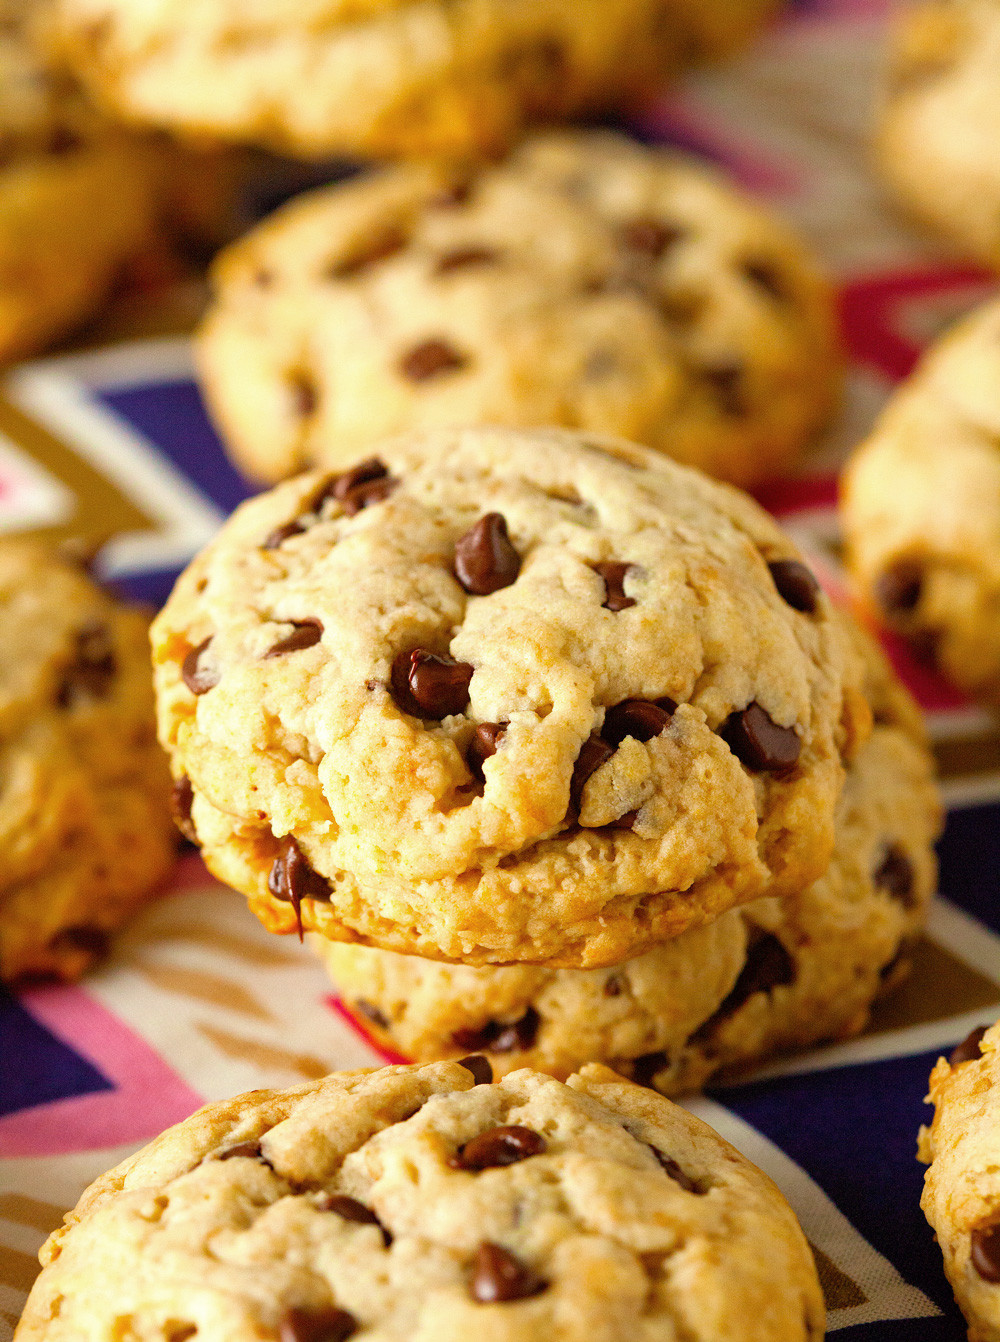 Chocolate Chip Cookies Recipe Healthy  Unbelievably Healthy Chocolate Chip Cookies